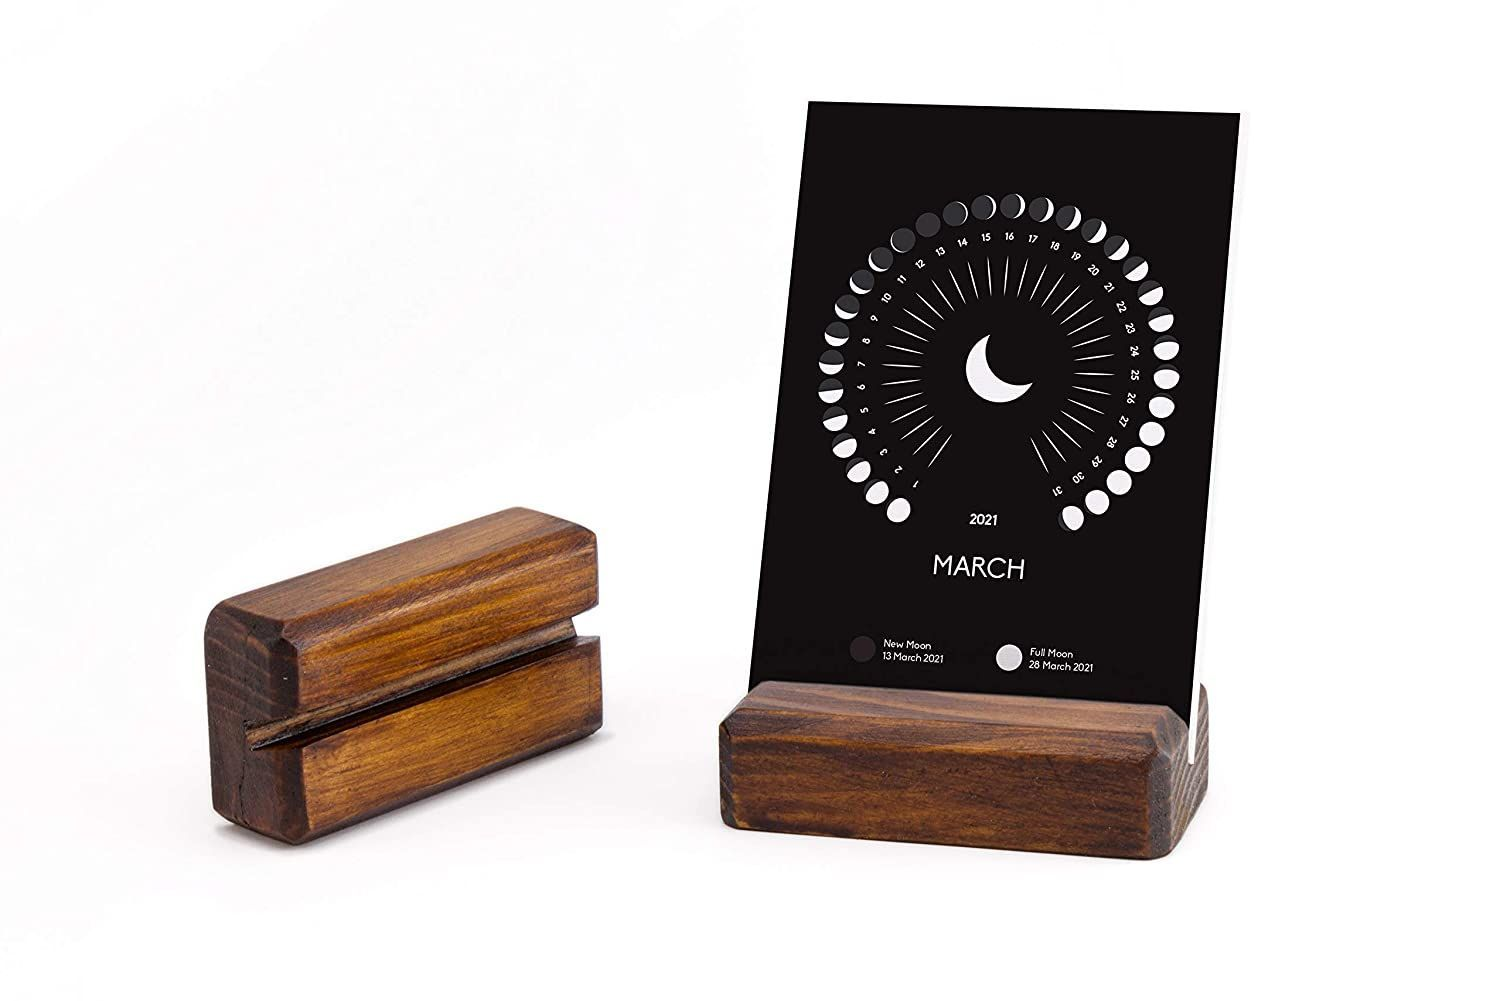 Amazon.com: 2021 Desk Calendar with Wooden Stand, 3 x 4.3 ...